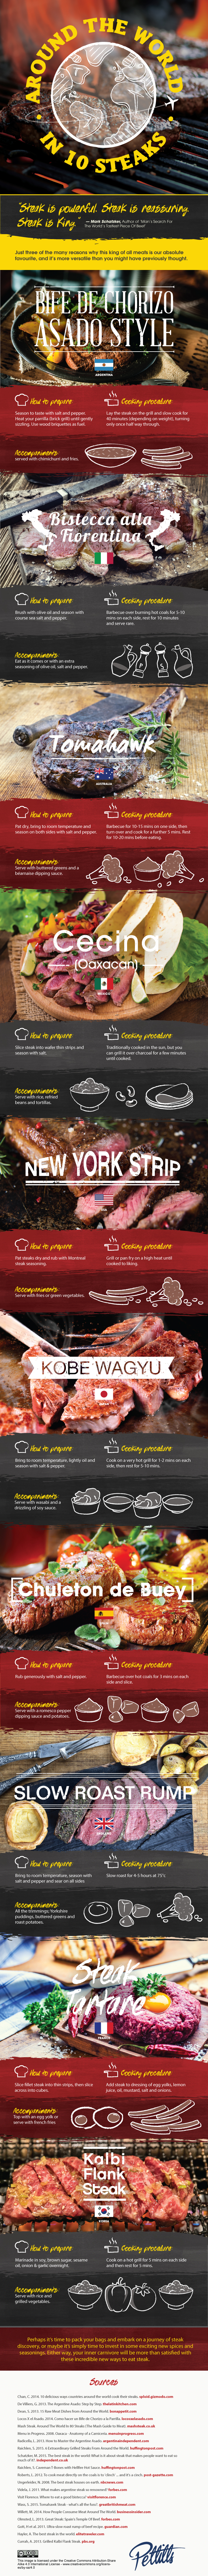 Around the World in 10 Steaks [Infographic]